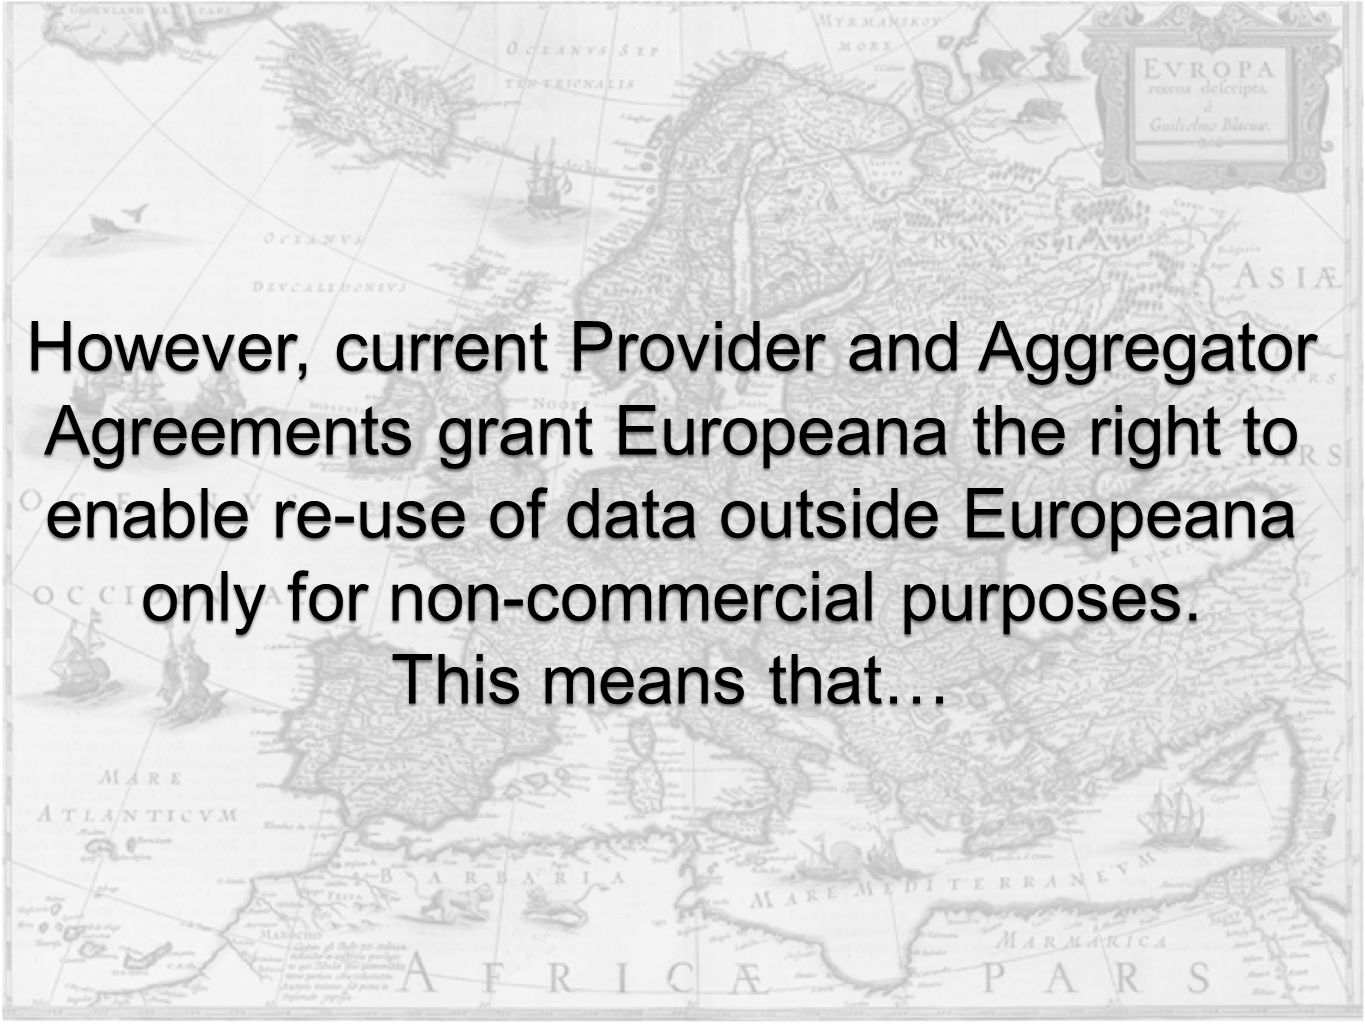 However, current Provider and Aggregator Agreements grant Europeana the right to enable re-use of data outside Europeana only for non-commercial purposes.